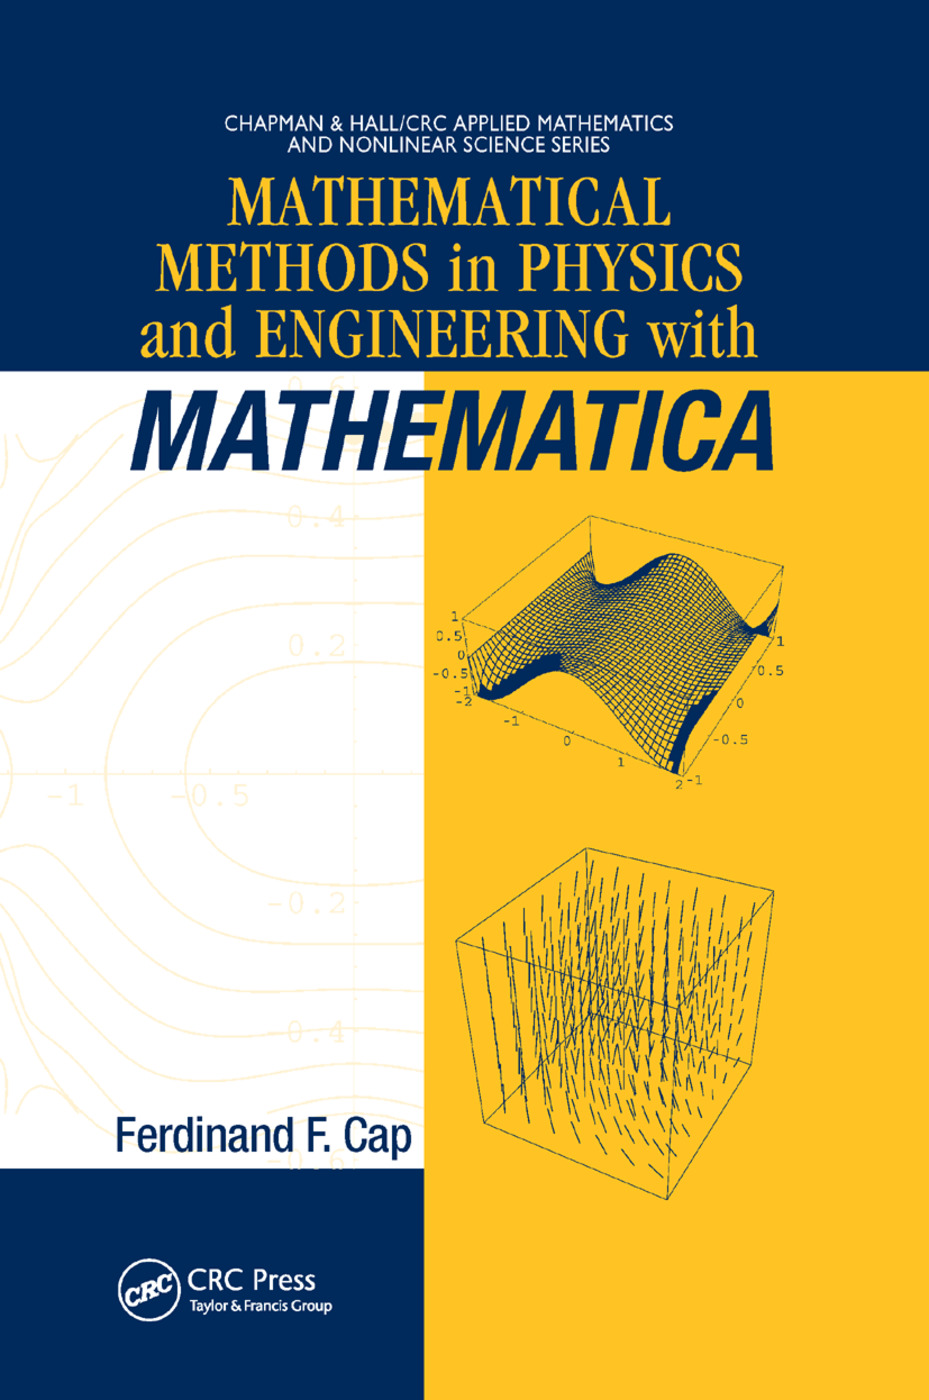 Mathematical Methods in Physics and Engineering with Mathematica: 1st Edition (Paperback) book cover